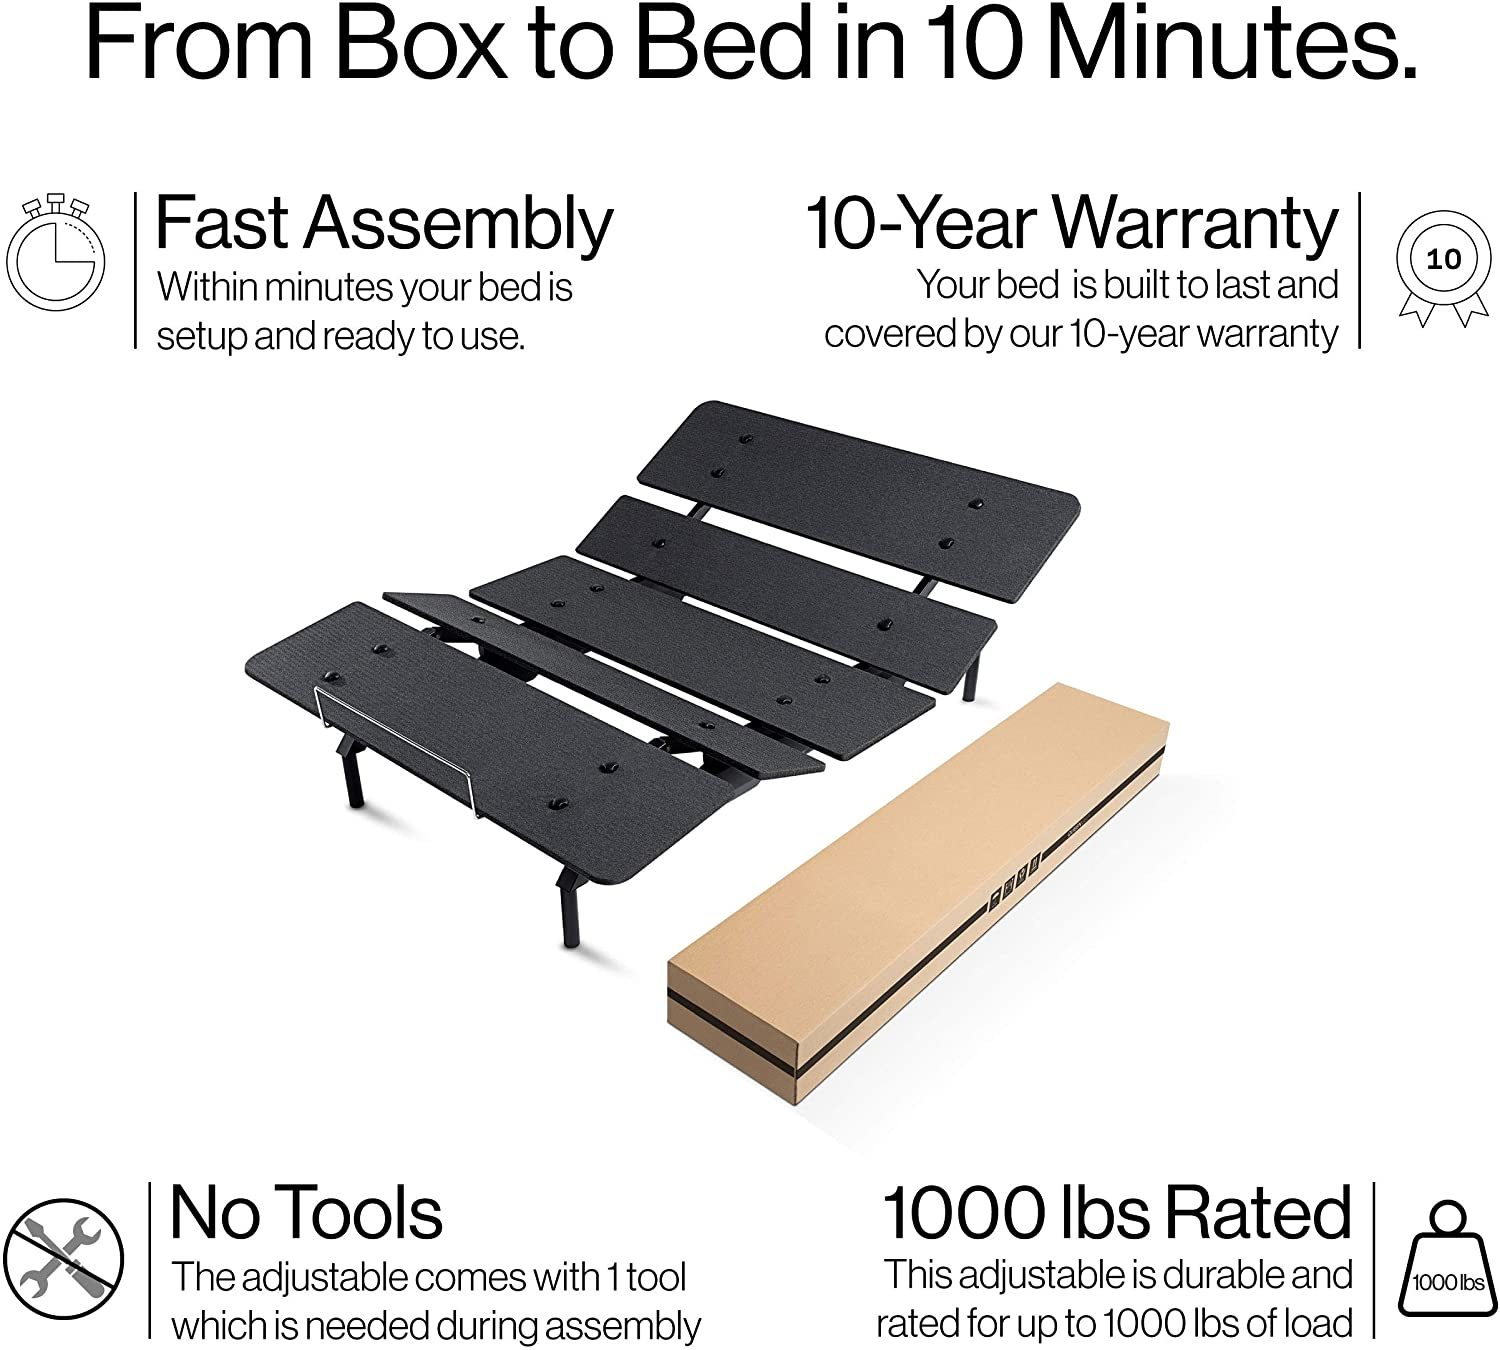 Yaasa ONE Adjustable Bed Reviews - Important features